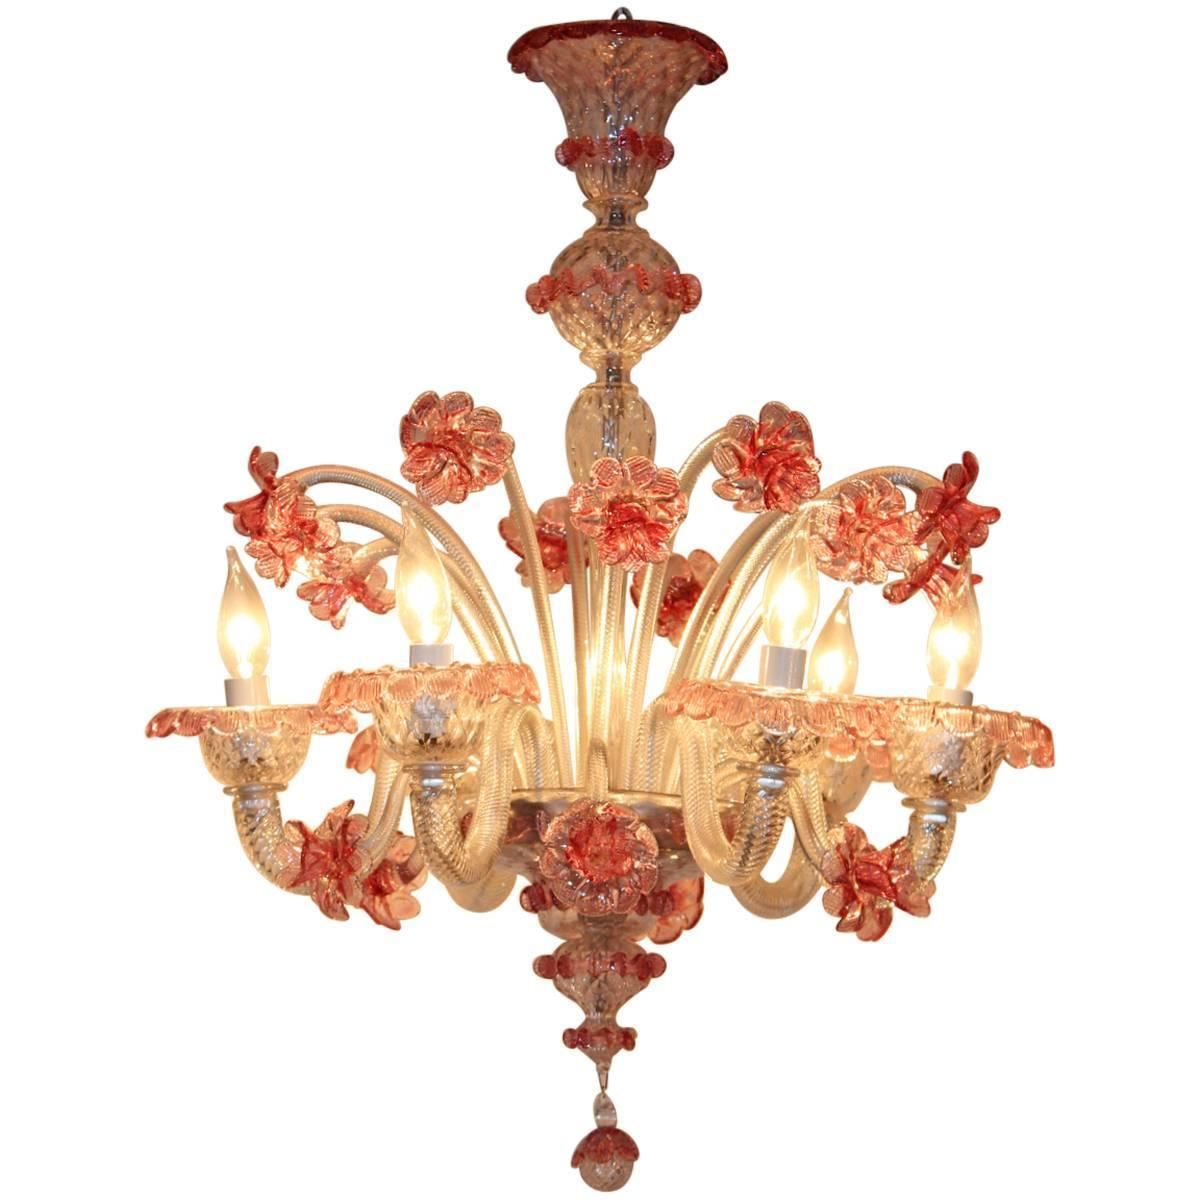 Venetian glass six light handmade chandelier for sale at for Unique chandeliers for sale